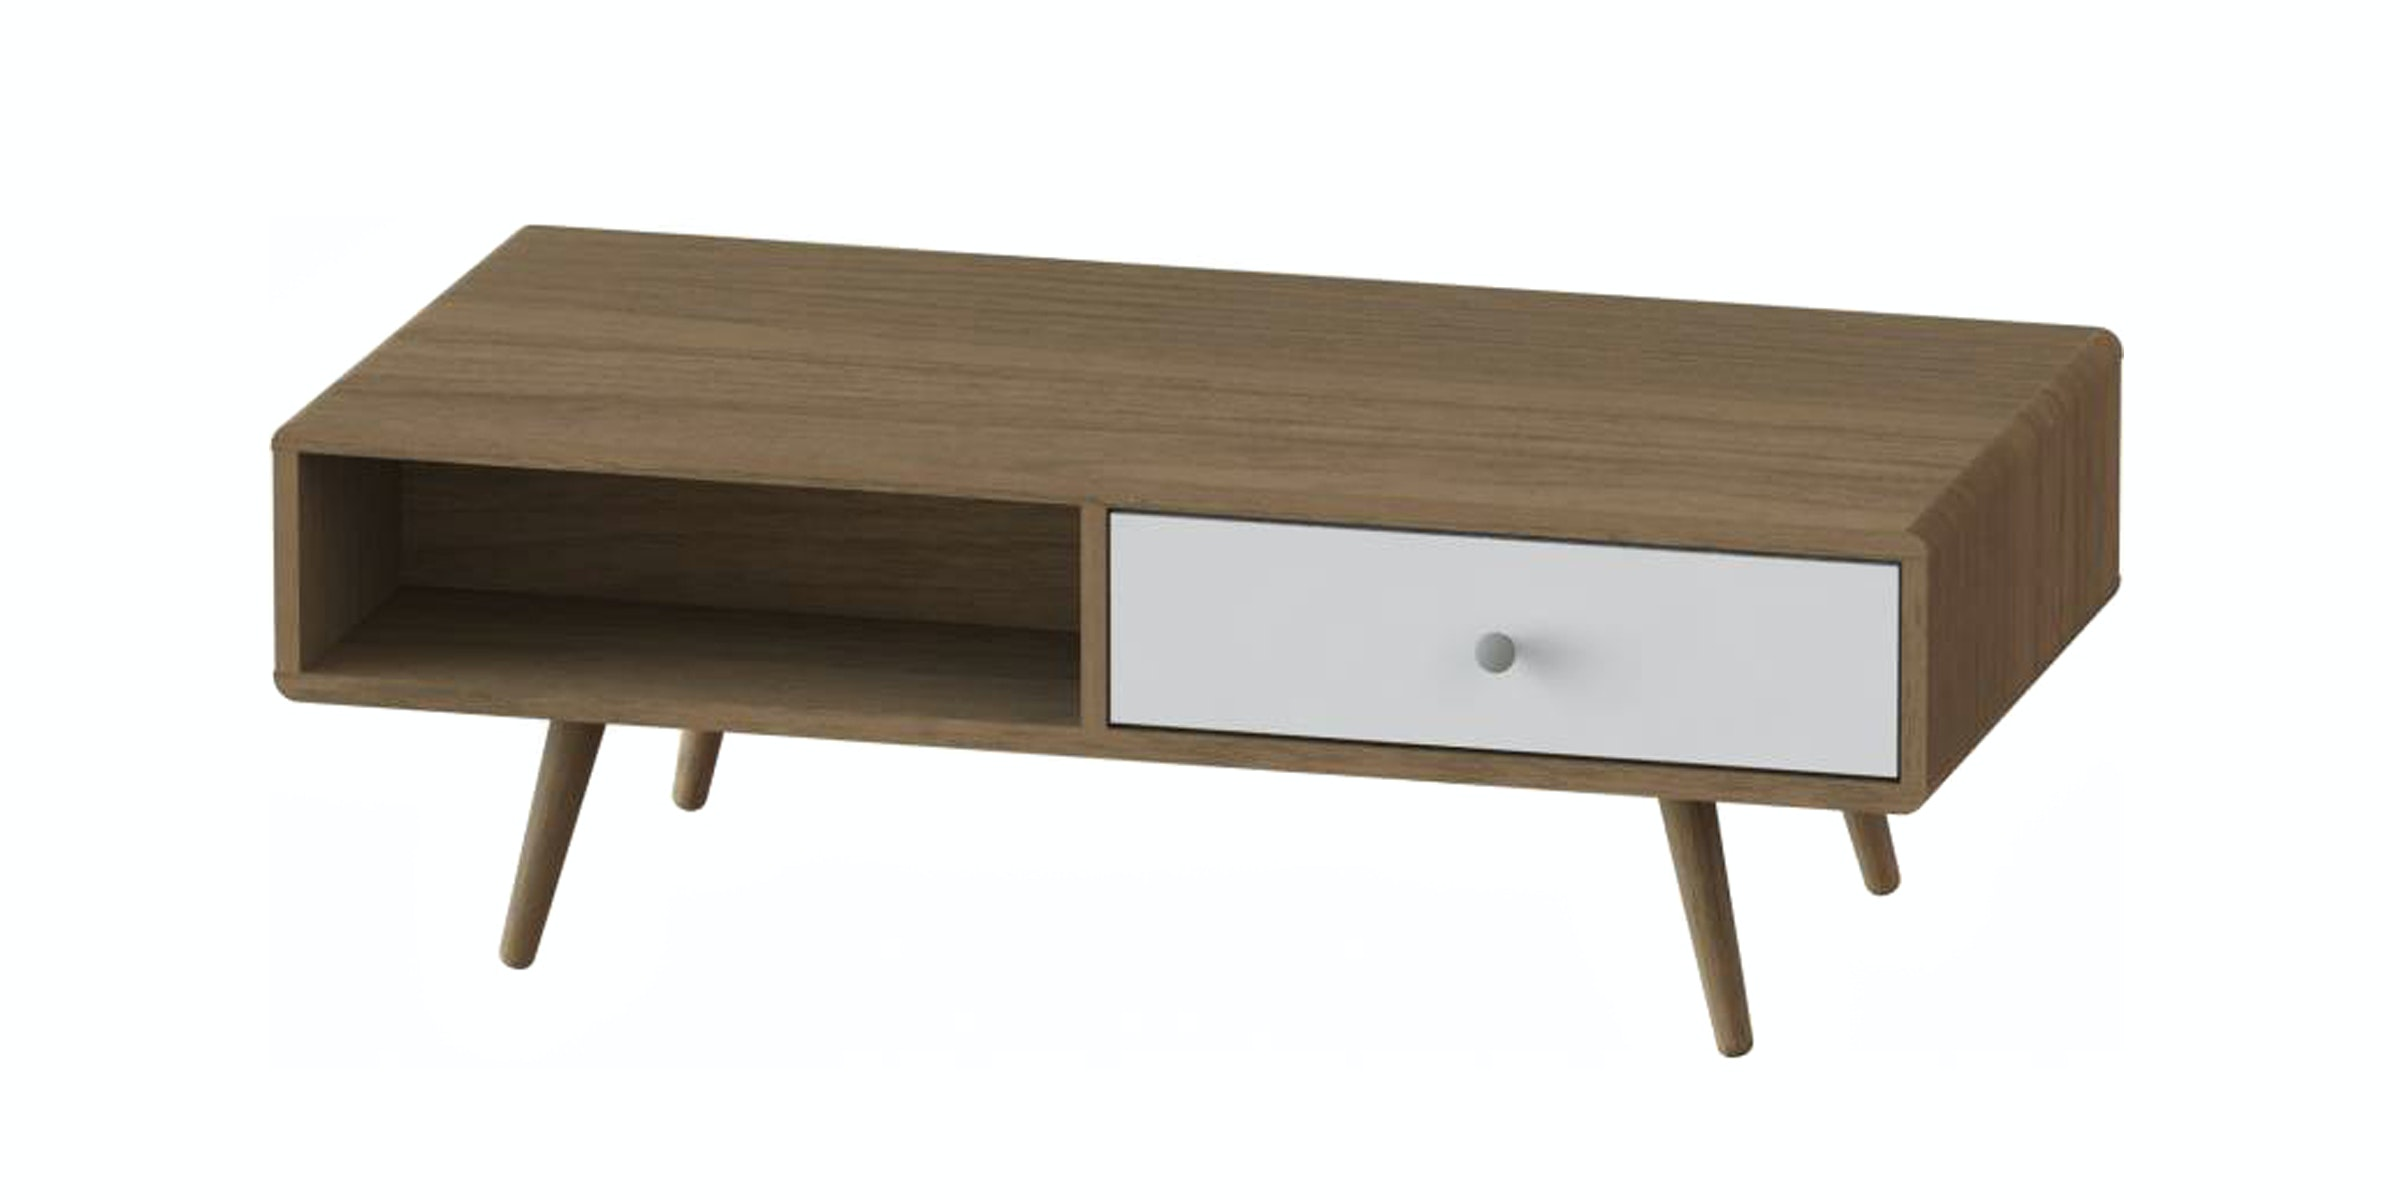 JYSK Coffee Table Benedikte 120Cm 1 Drawer Walnut/White